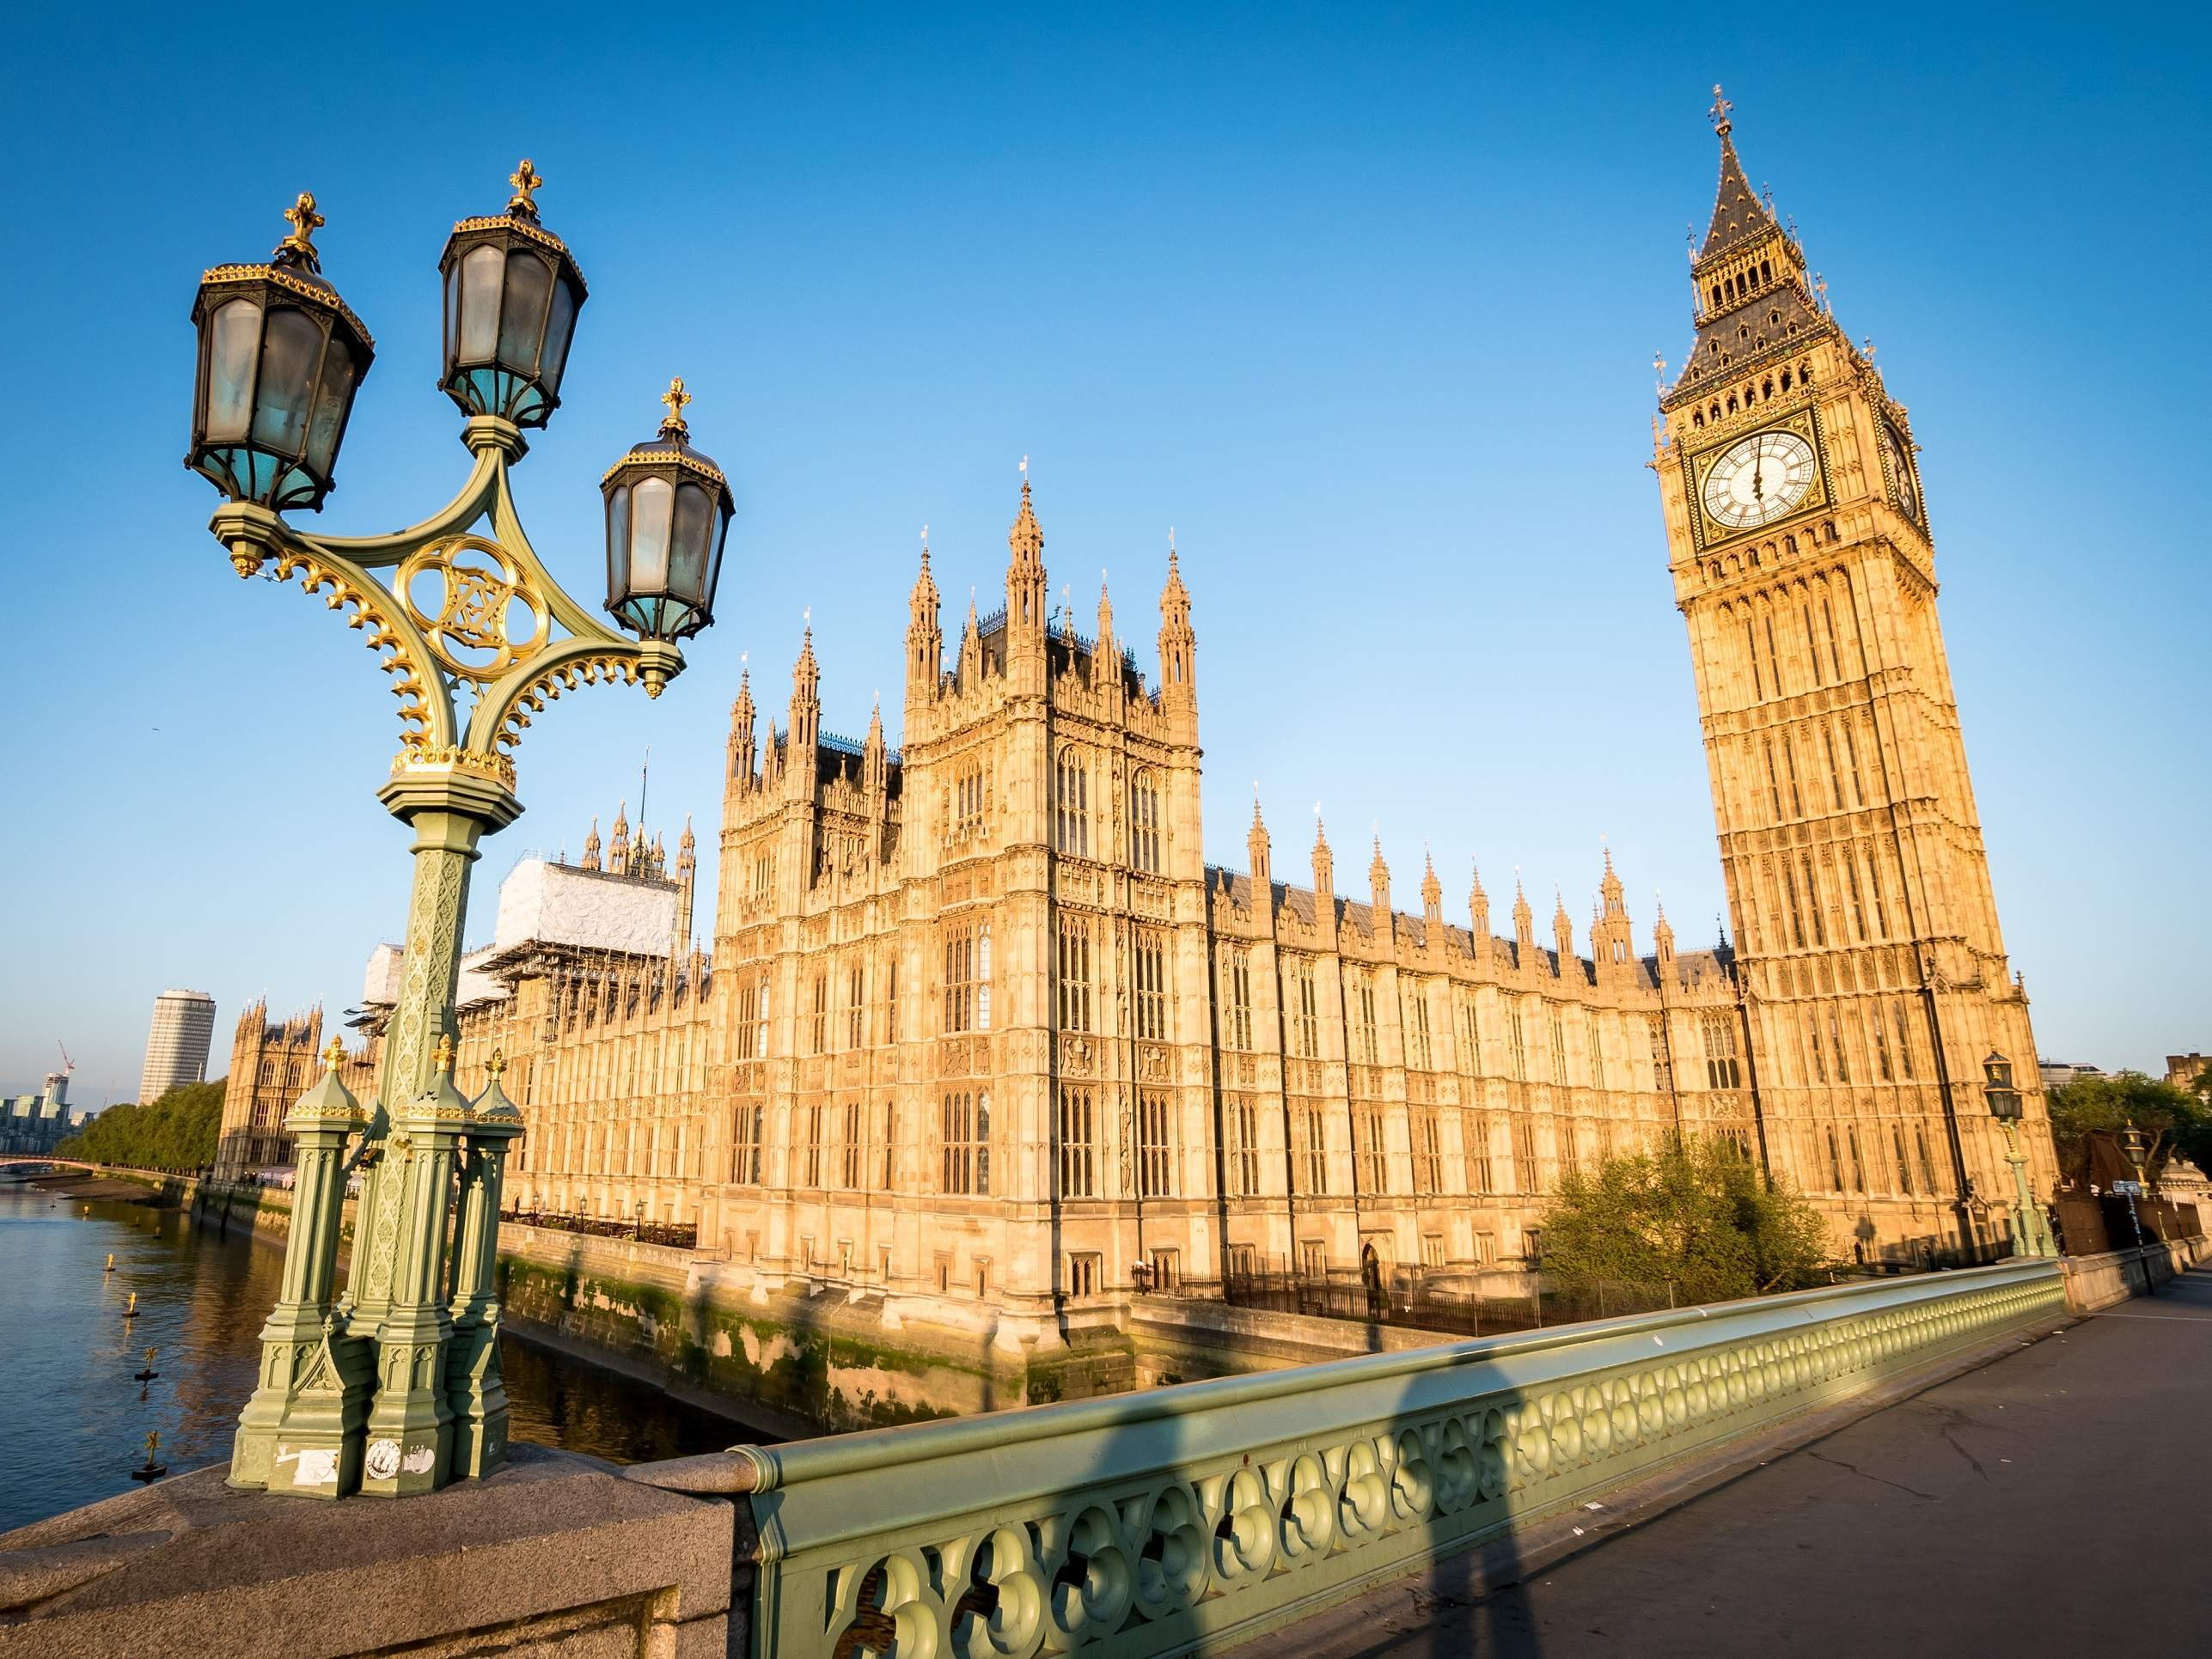 The UK parliament was hacked this weekend: what we know so far